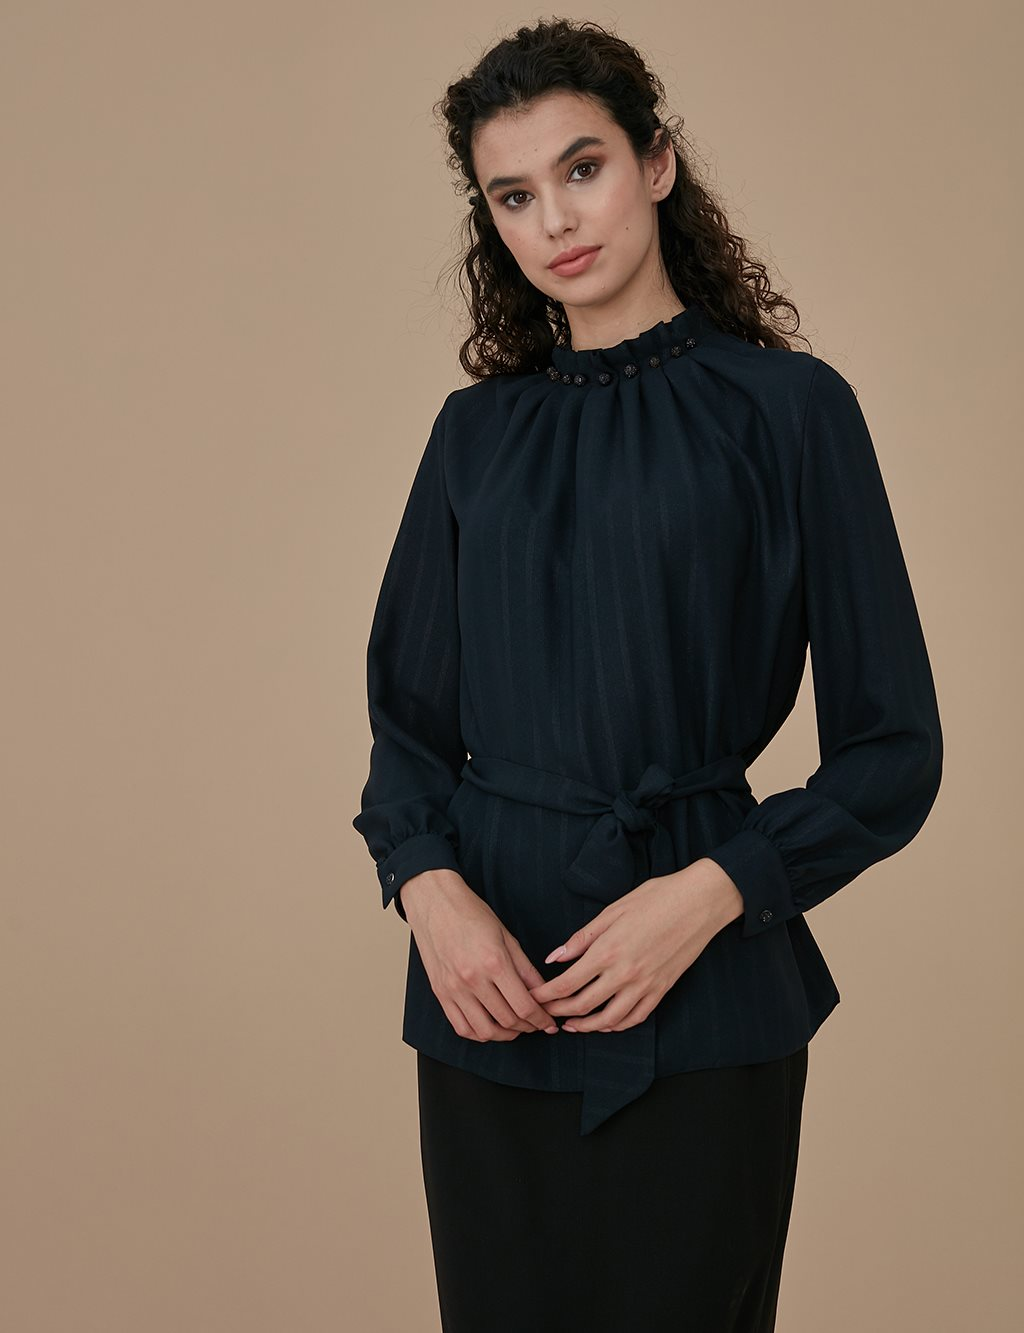 Pleated Collar Blouse A9 10041 Black